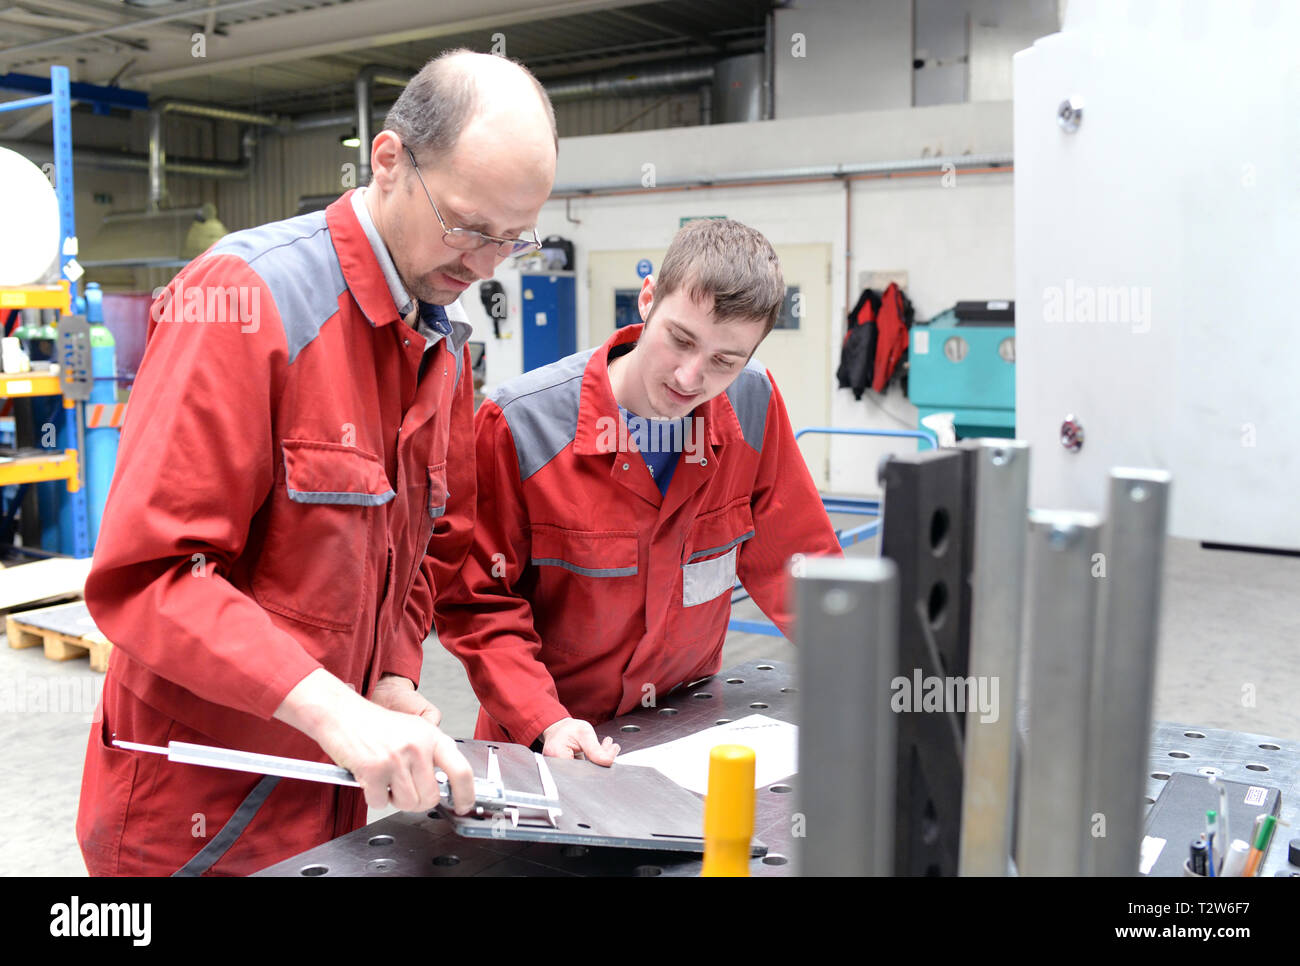 apprentice and trainer in a metalworking company - apprenticeship in the trade - Stock Image